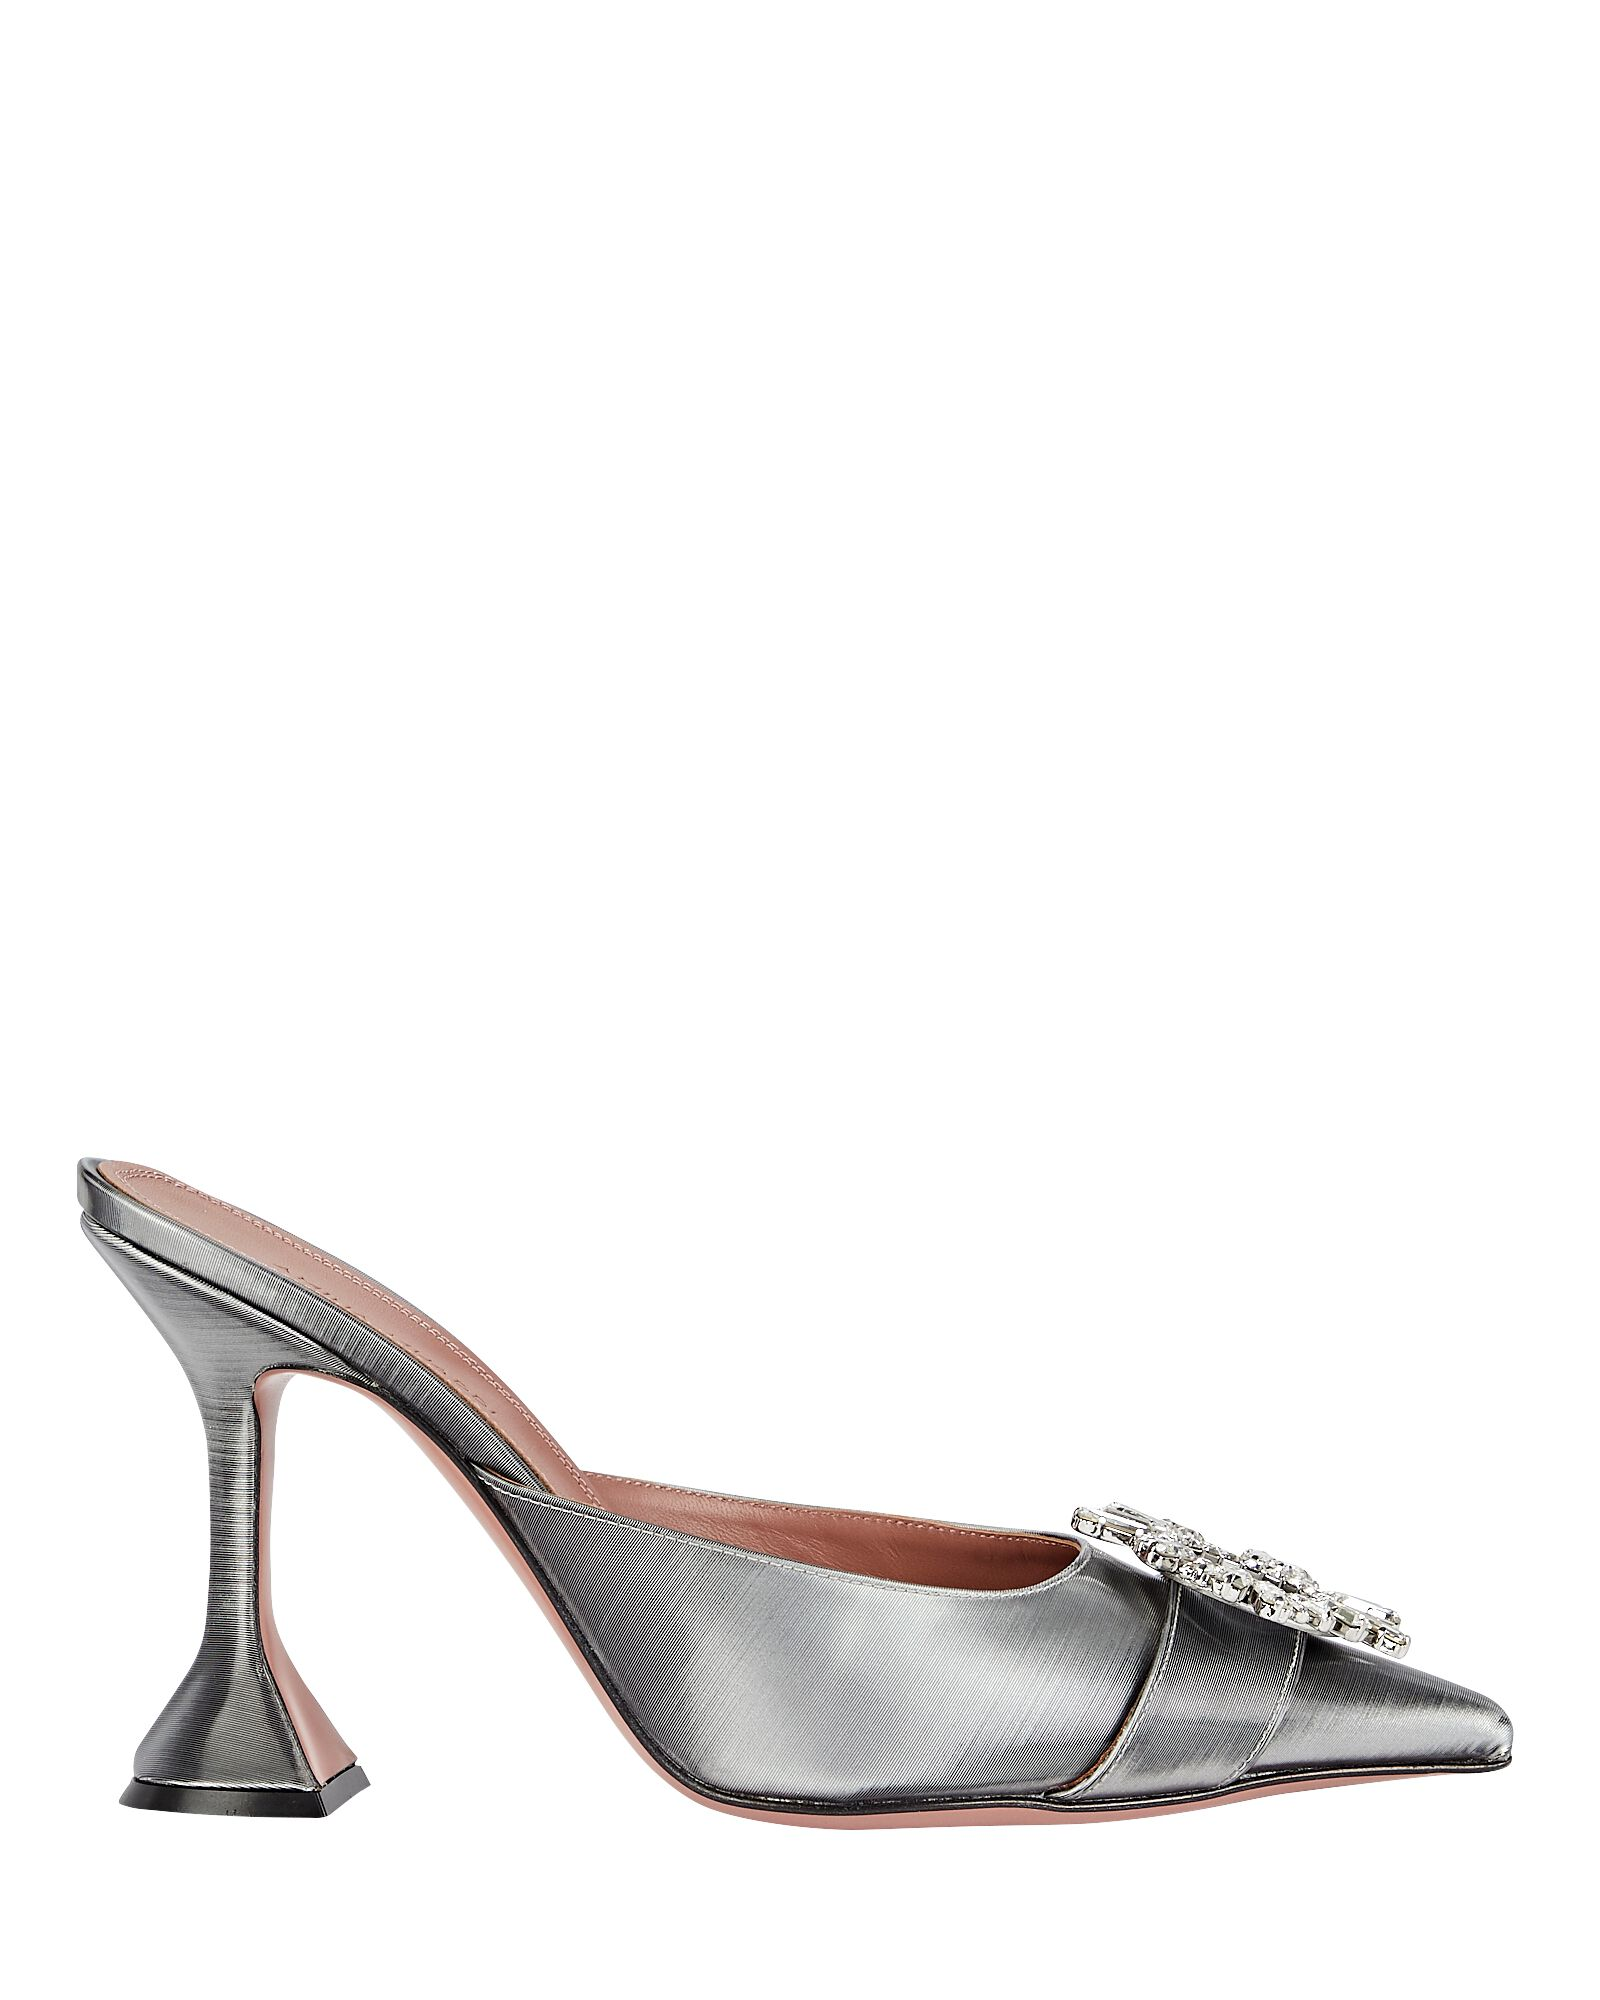 Begum Satin Mules, GREY, hi-res